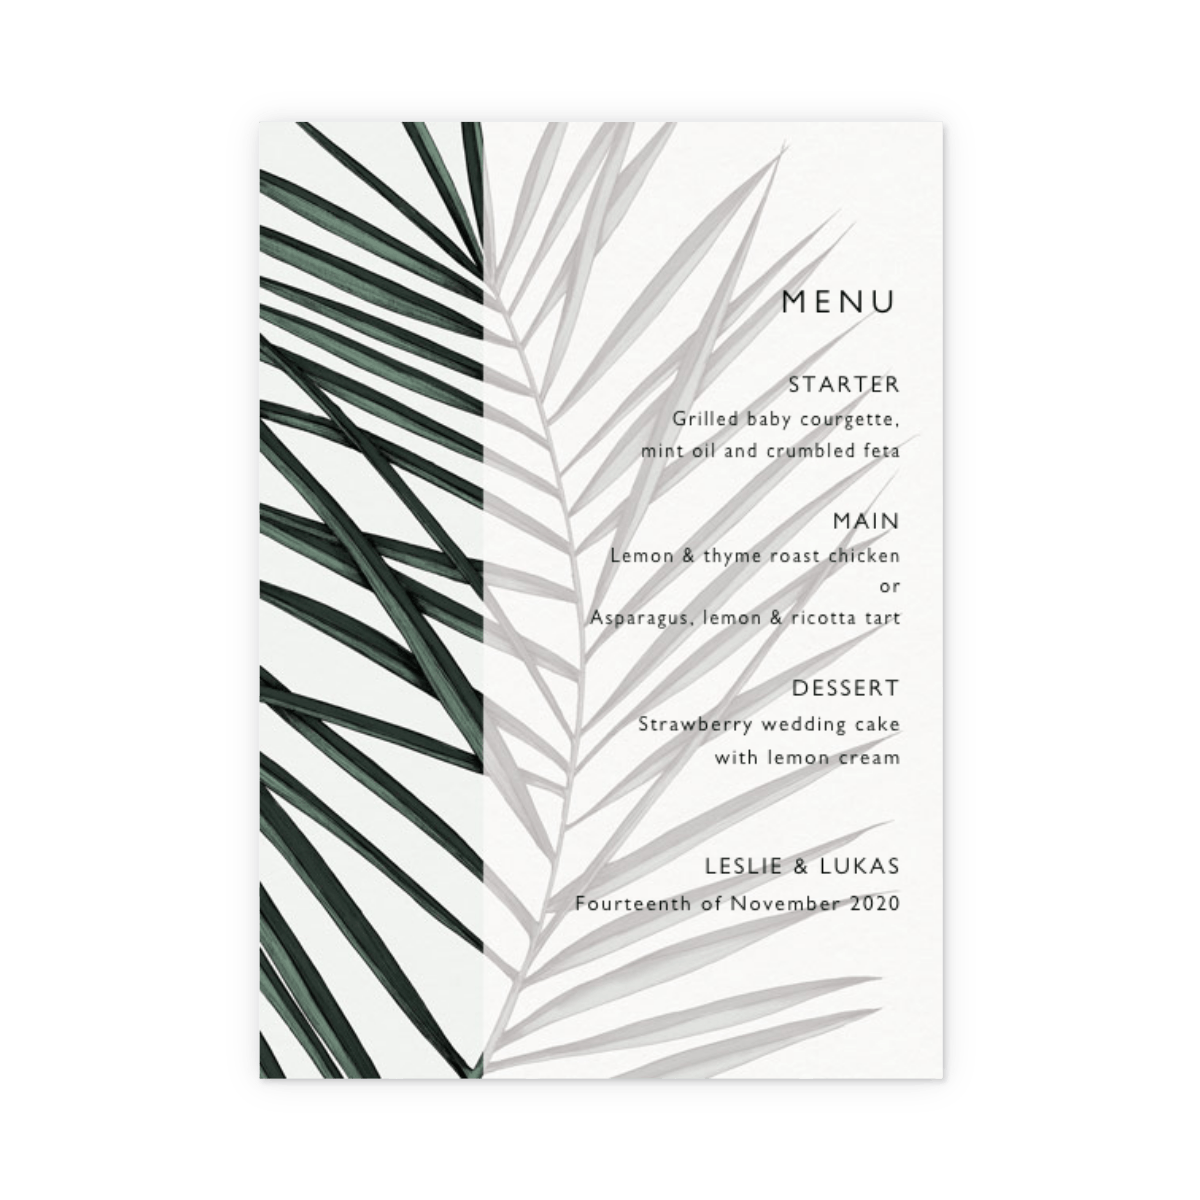 Https%3a%2f%2fwww.papier.com%2fproduct image%2f69961%2f4%2fpalm leaf 16554 front 1555273895.png?ixlib=rb 1.1